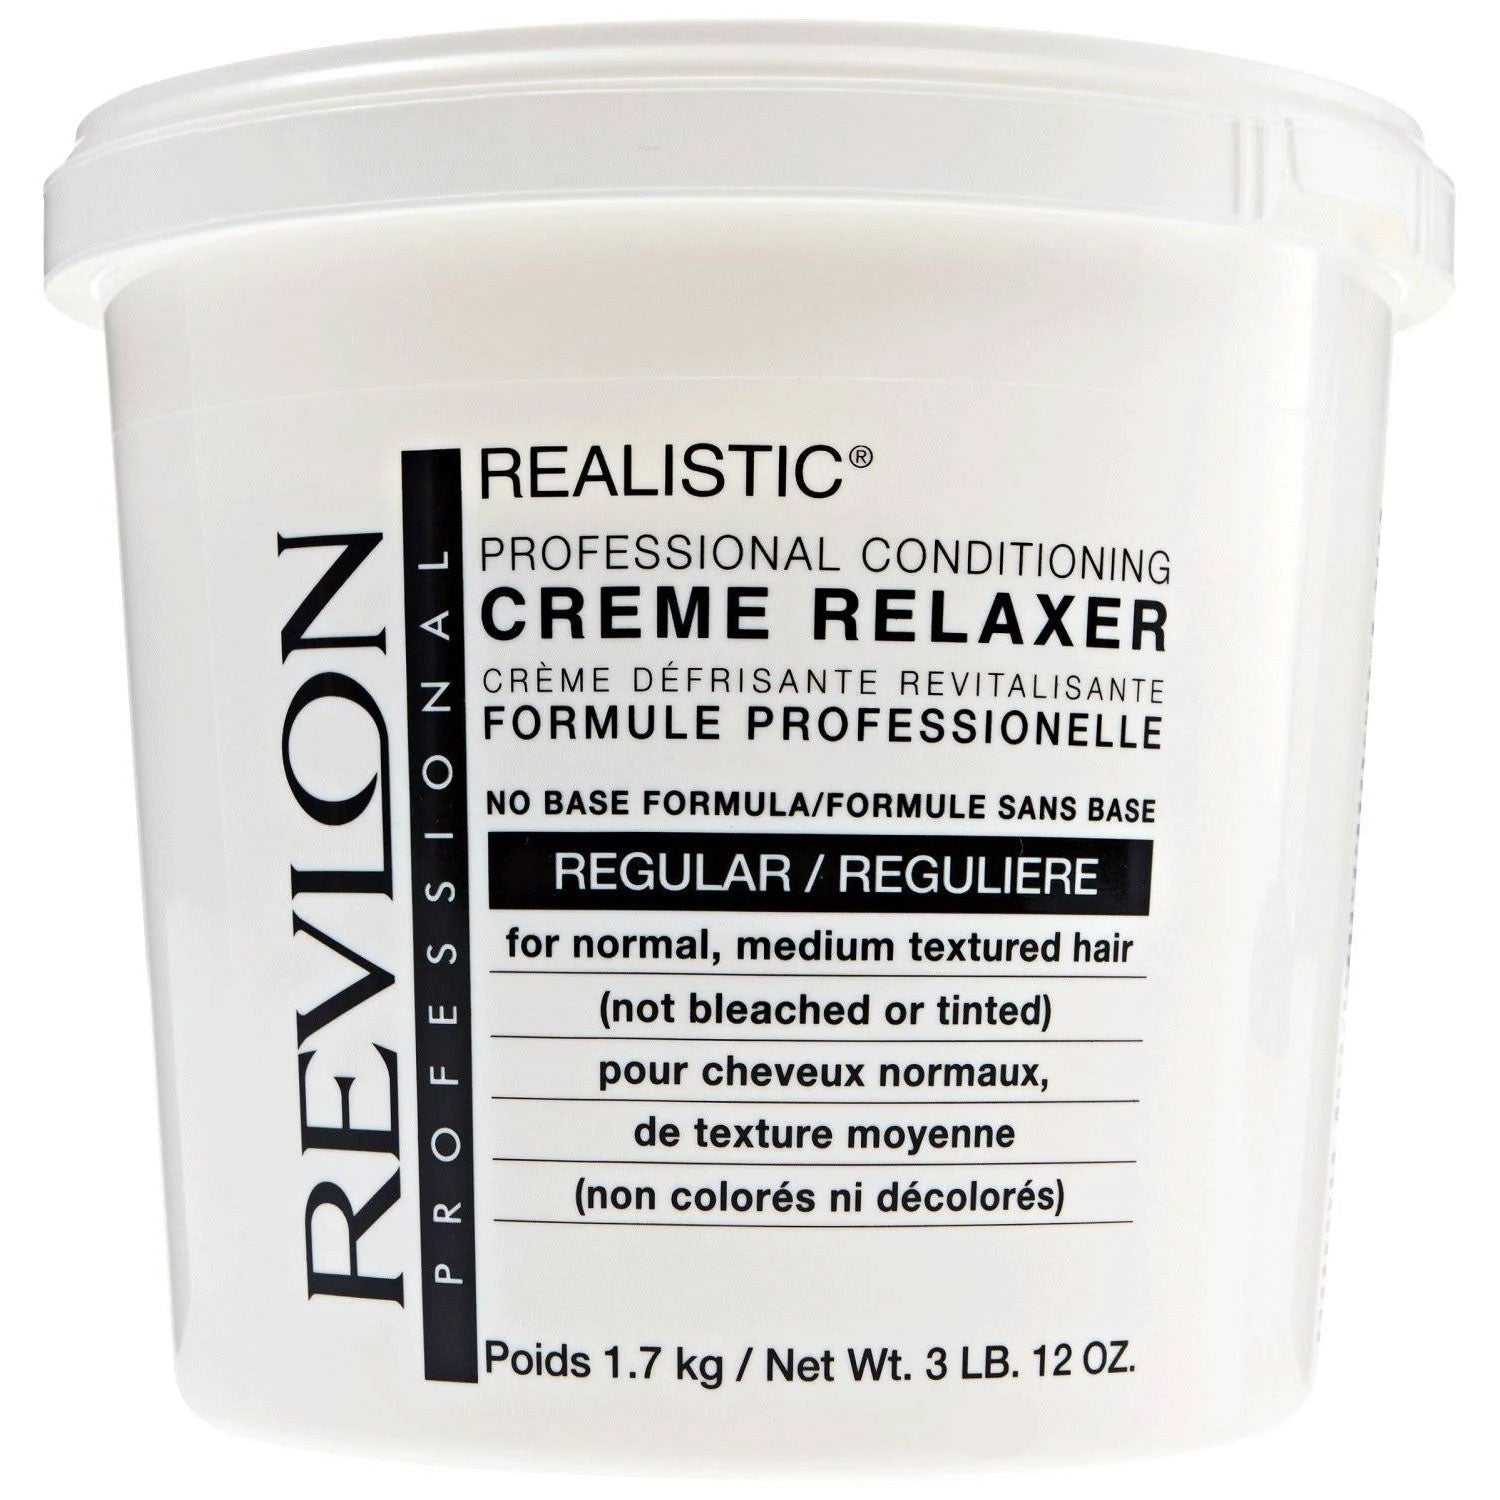 Revlon Realistic Conditioning Creme Relaxer No Base Regular 60 Oz.